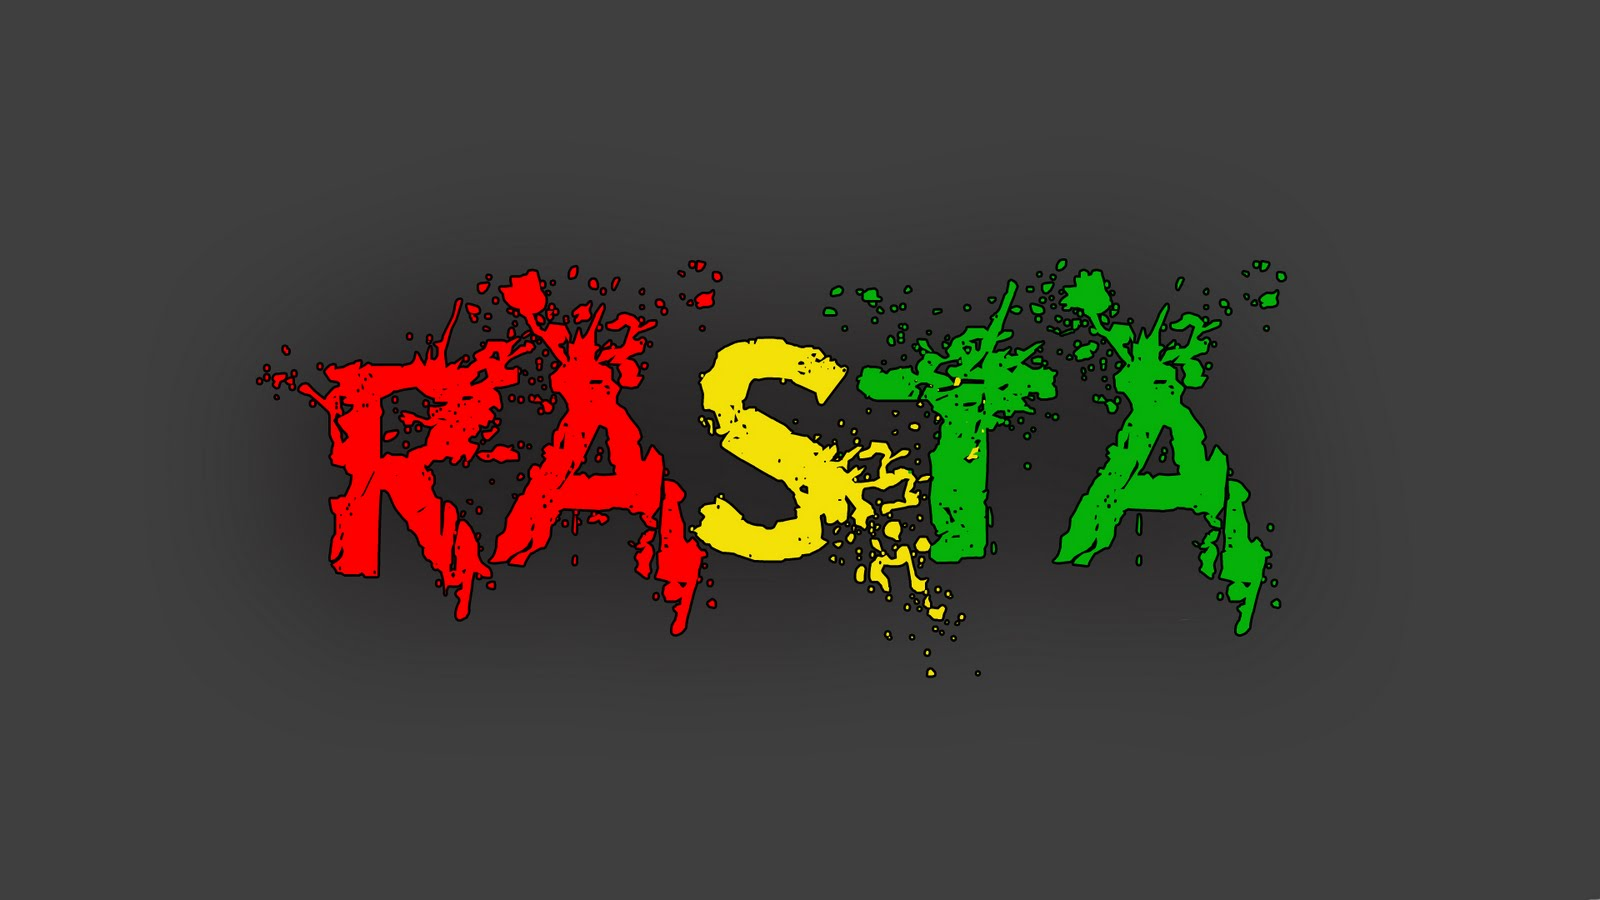 Wallpaper iphone rasta - Rasta Names Http Wallpoh Com Wallpapers Rasta